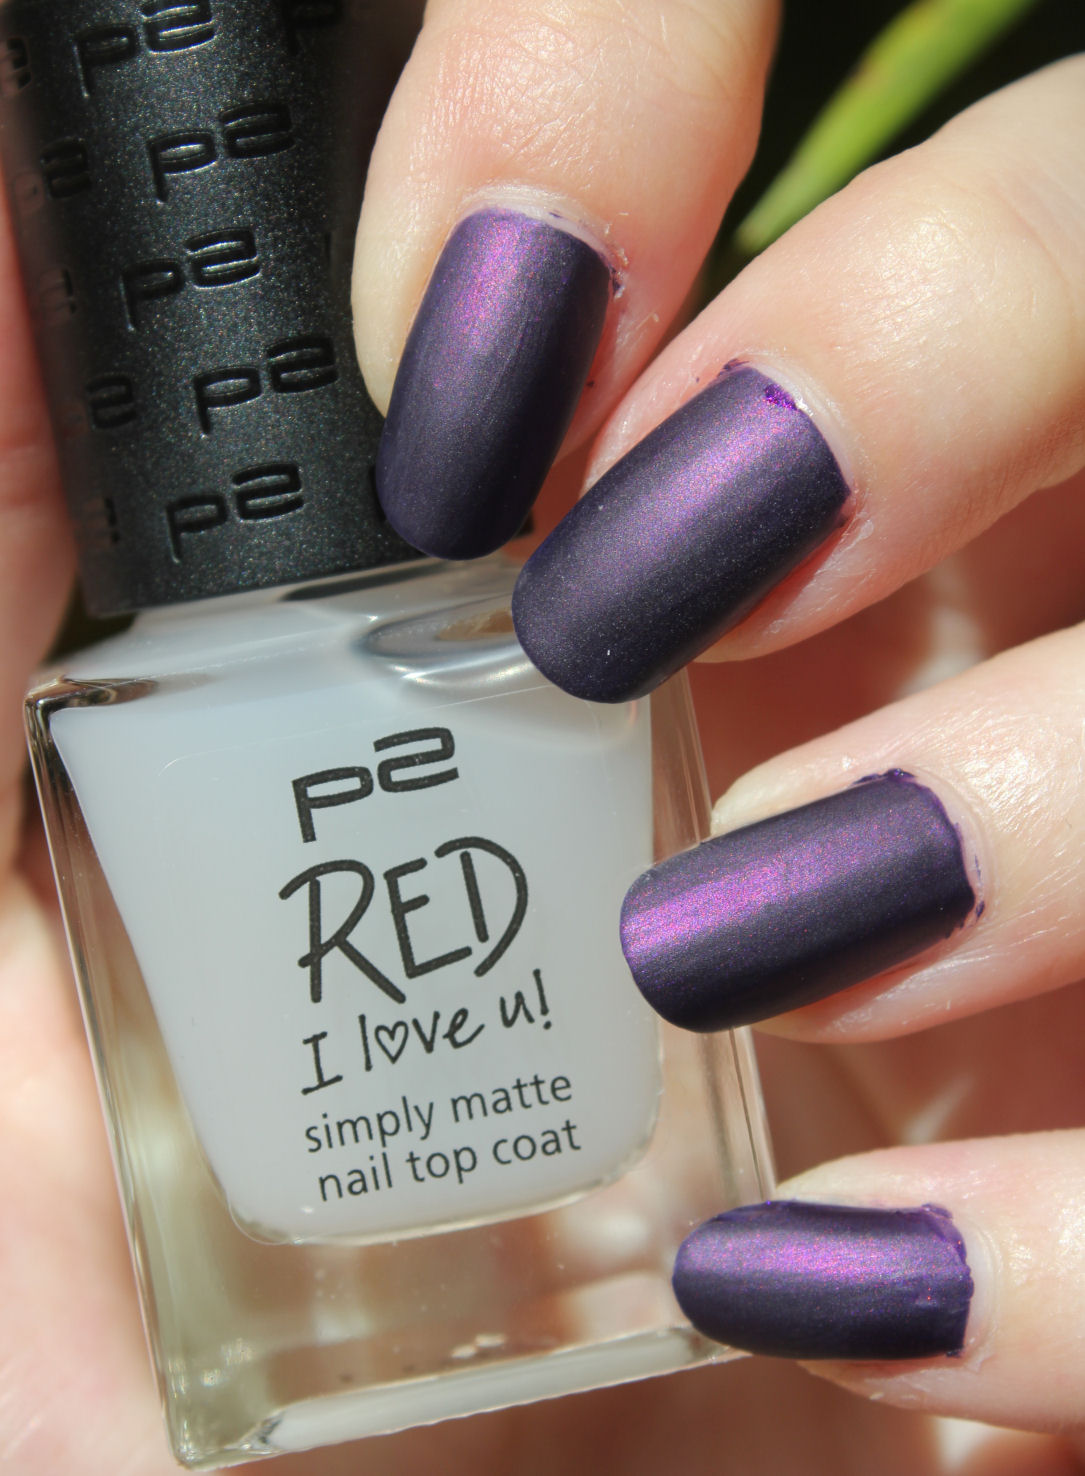 p2 red i love u simply matte nail top coat dupetest lacquediction. Black Bedroom Furniture Sets. Home Design Ideas